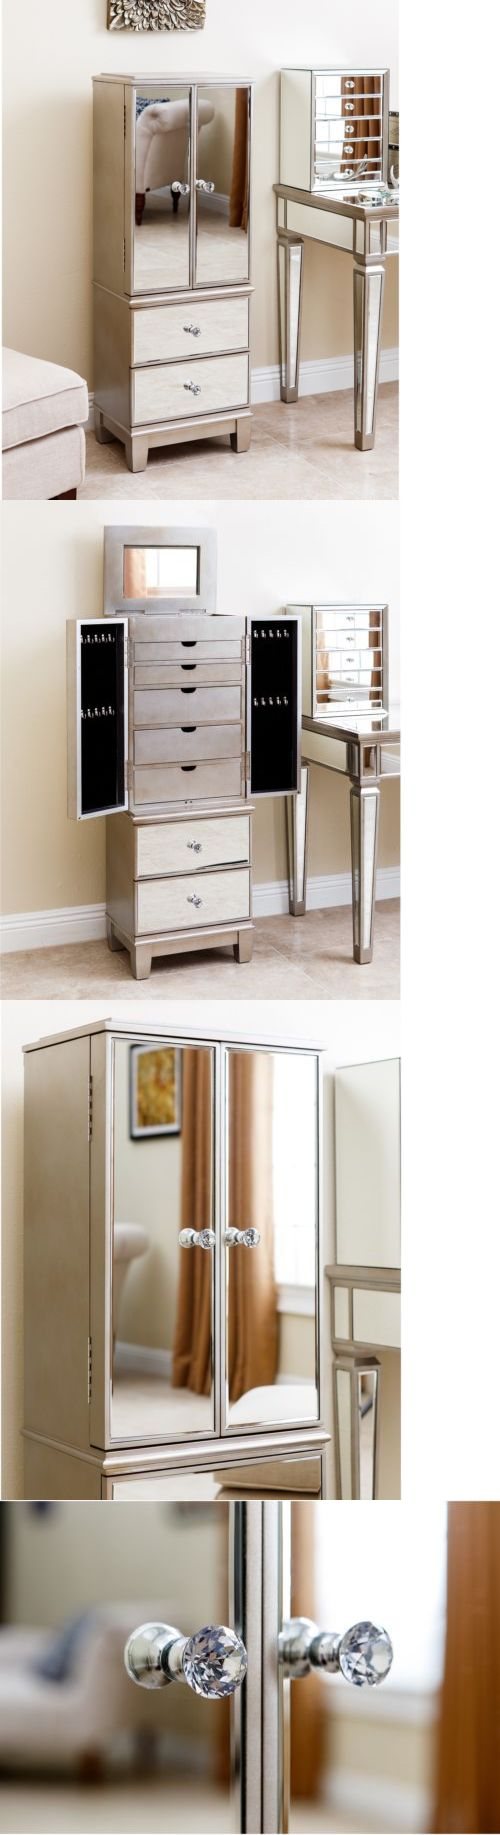 Other Jewelry Holders 168166: Sophie Mirrored Jewelry Armoire Jewelry Storage Box Jewelry Chest Jewelry Holder BUY IT NOW ONLY: $421.99